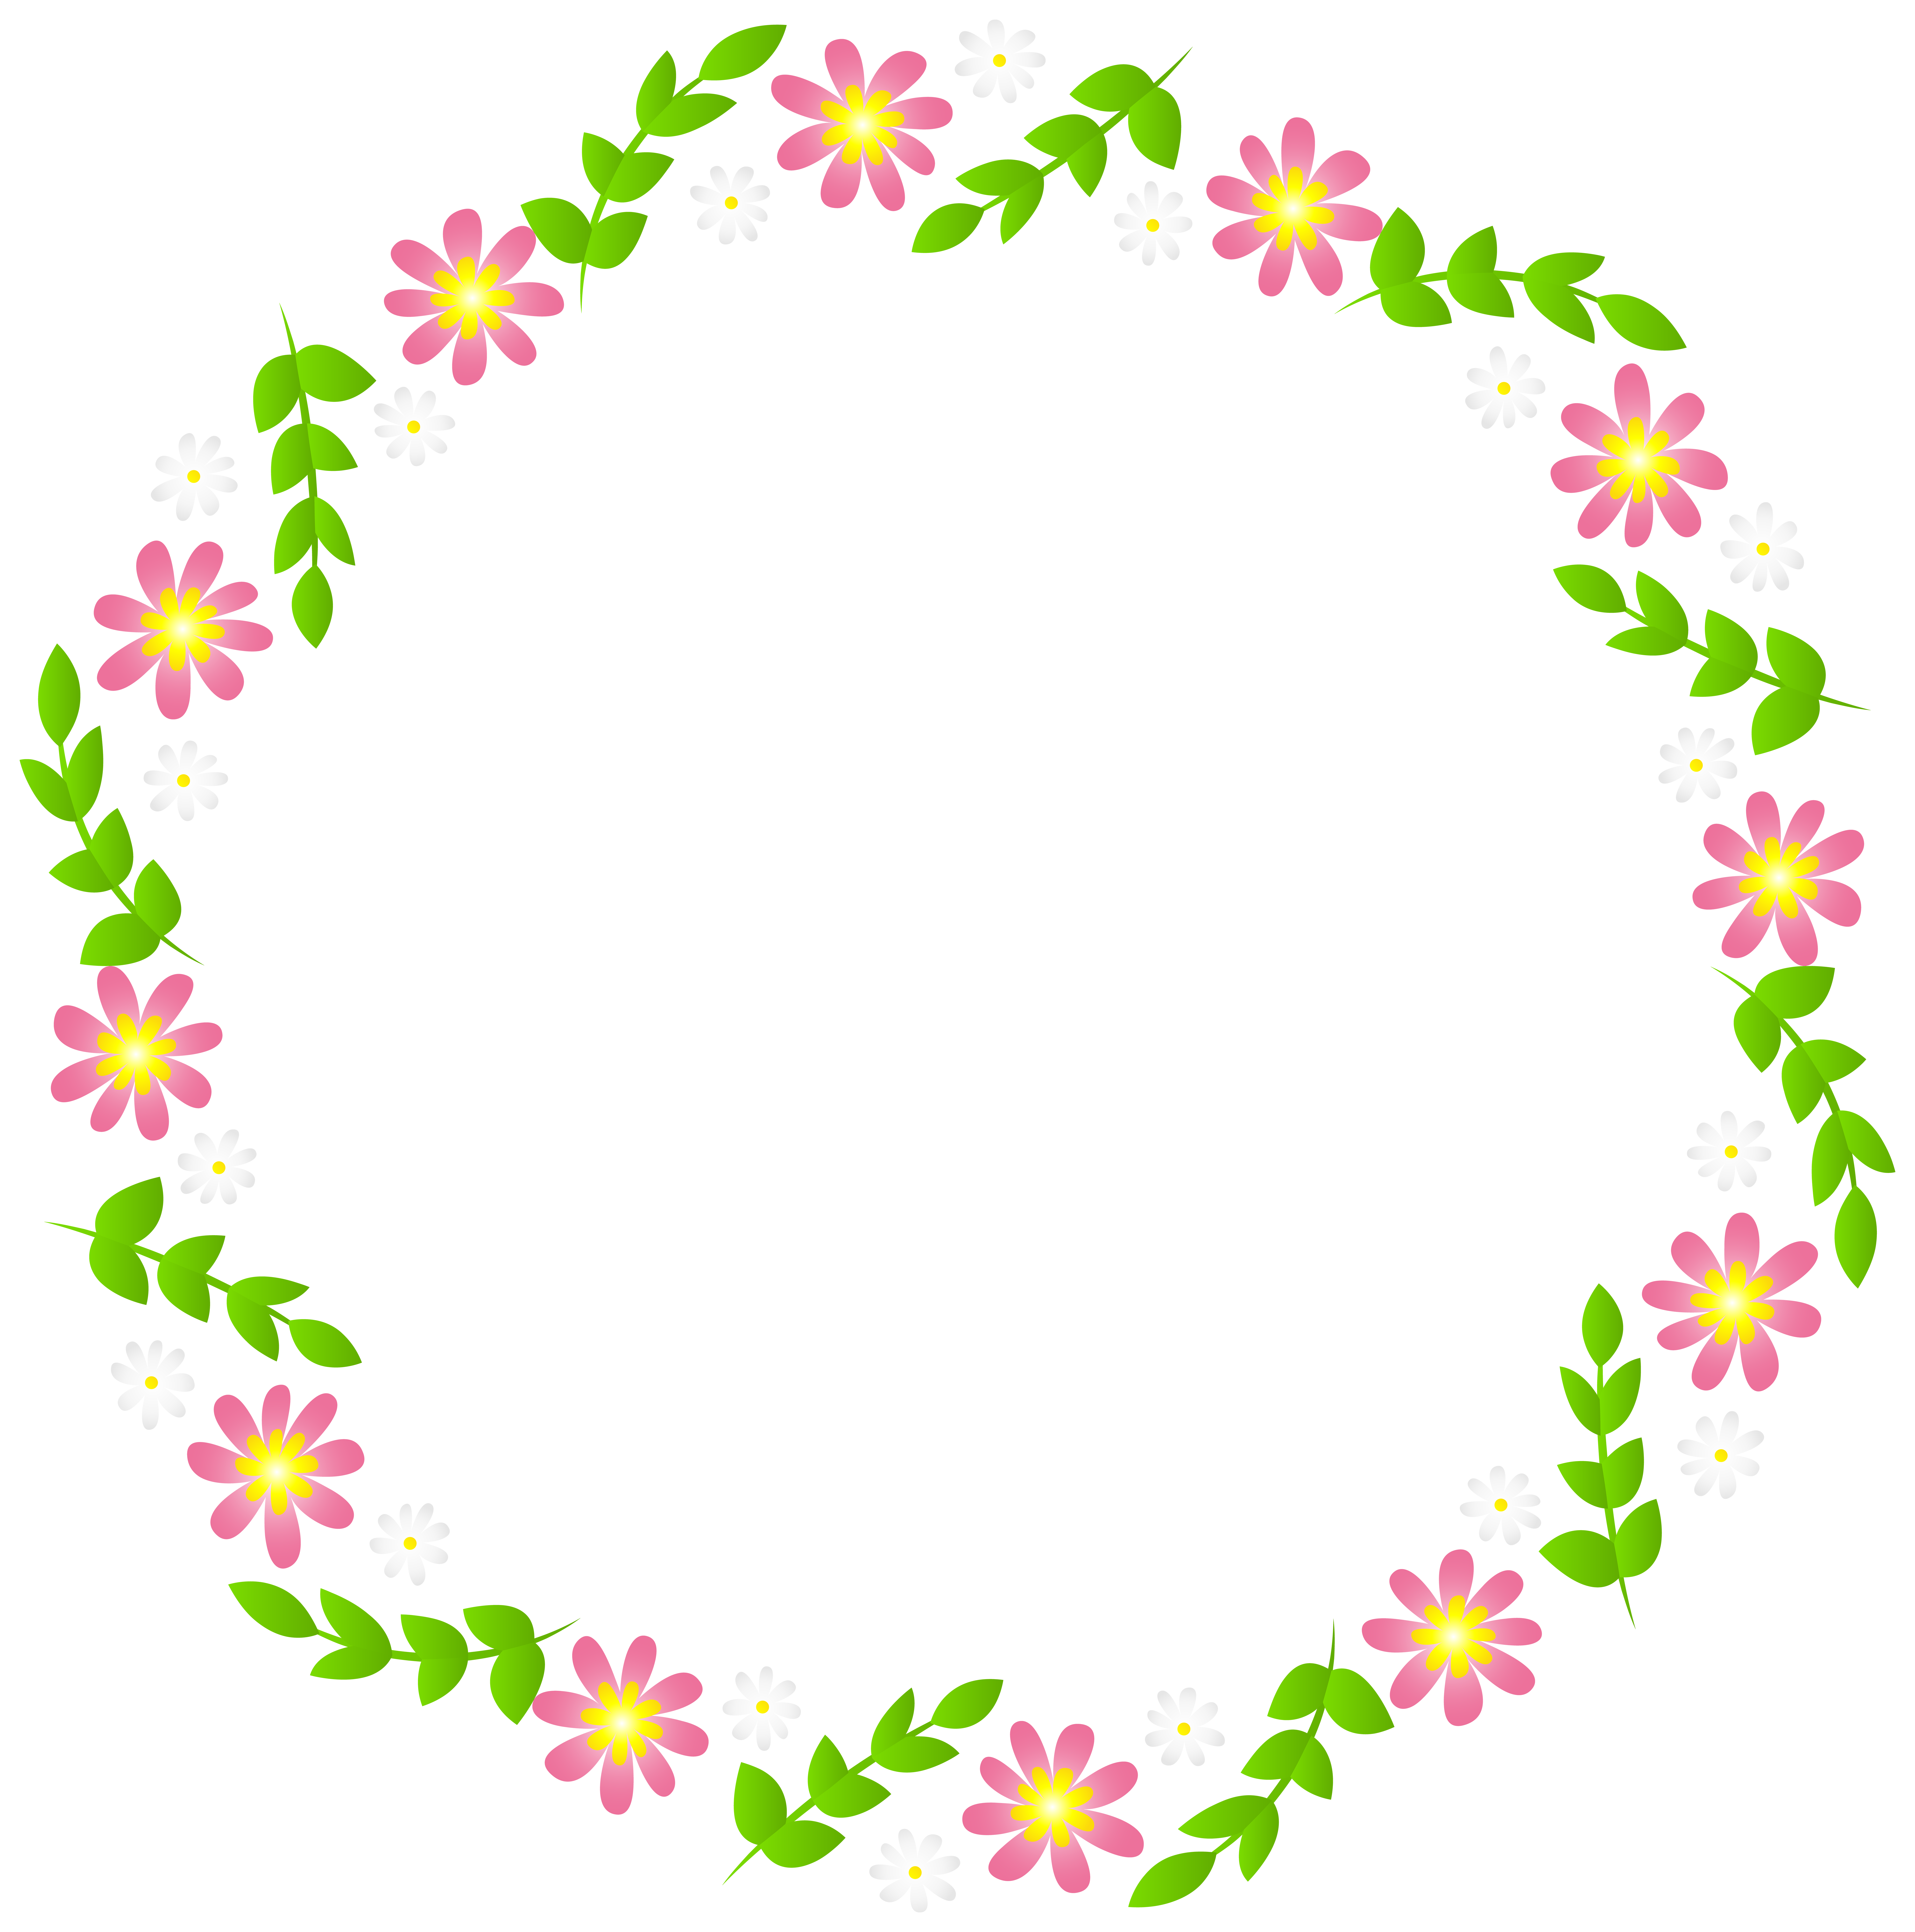 Flower border free clipart png free Floral Border Frame Transparent Clip Art   Gallery Yopriceville ... png free